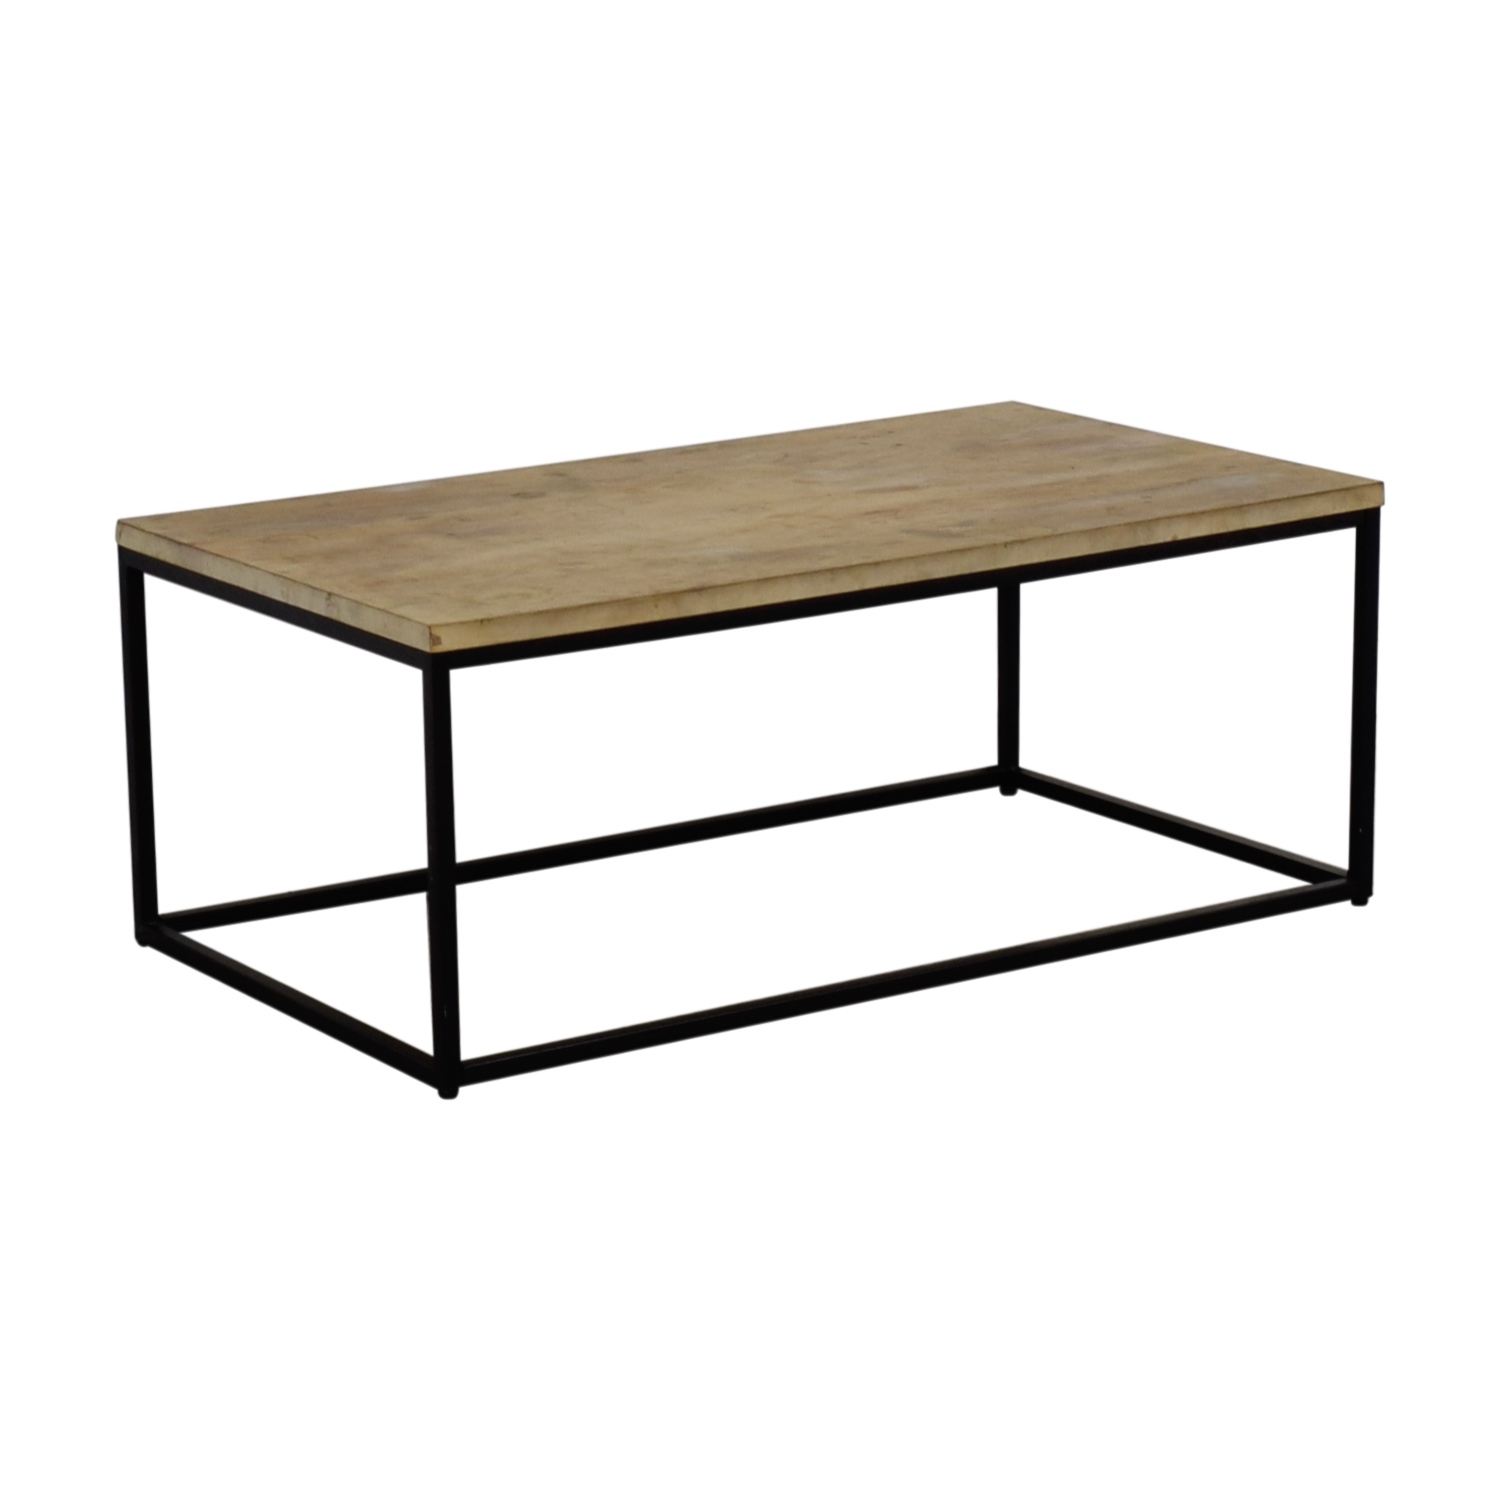 Peaceably West Elm West Elm Box Frame Wooden Coffee Table Coffee Tables Off West Elm West Elm Box Frame Wooden Coffee Table Tables Wooden Coffee Tables Canada Wooden Coffee Tables Designs houzz-02 Wooden Coffee Tables